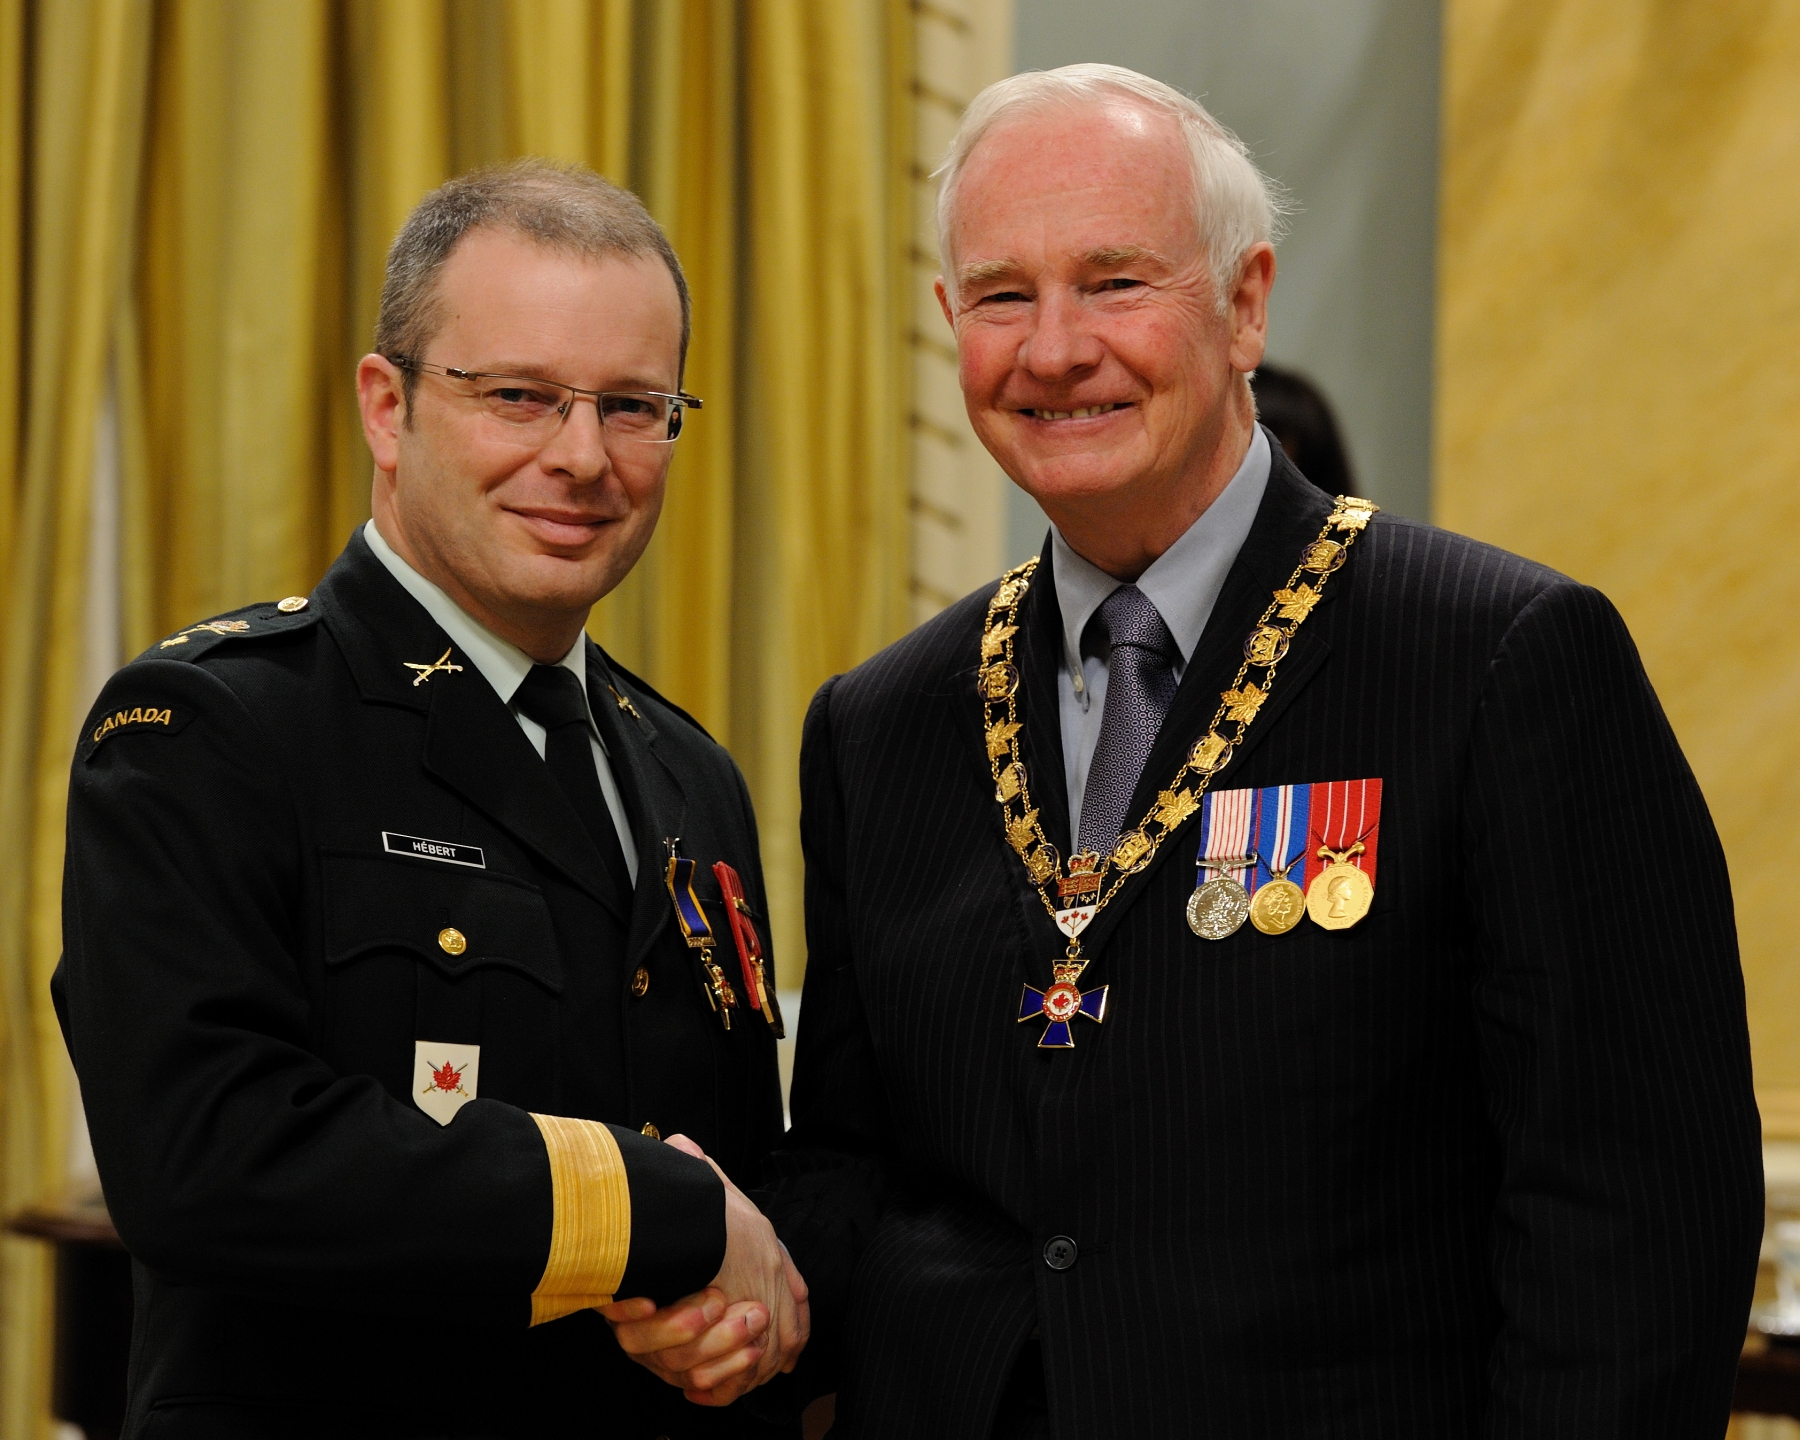 His Excellency presented the Order of Military Merit at the Officer level (O.M.M.) to Brigadier-General Simon Hébert, O.M.M., C.D.,